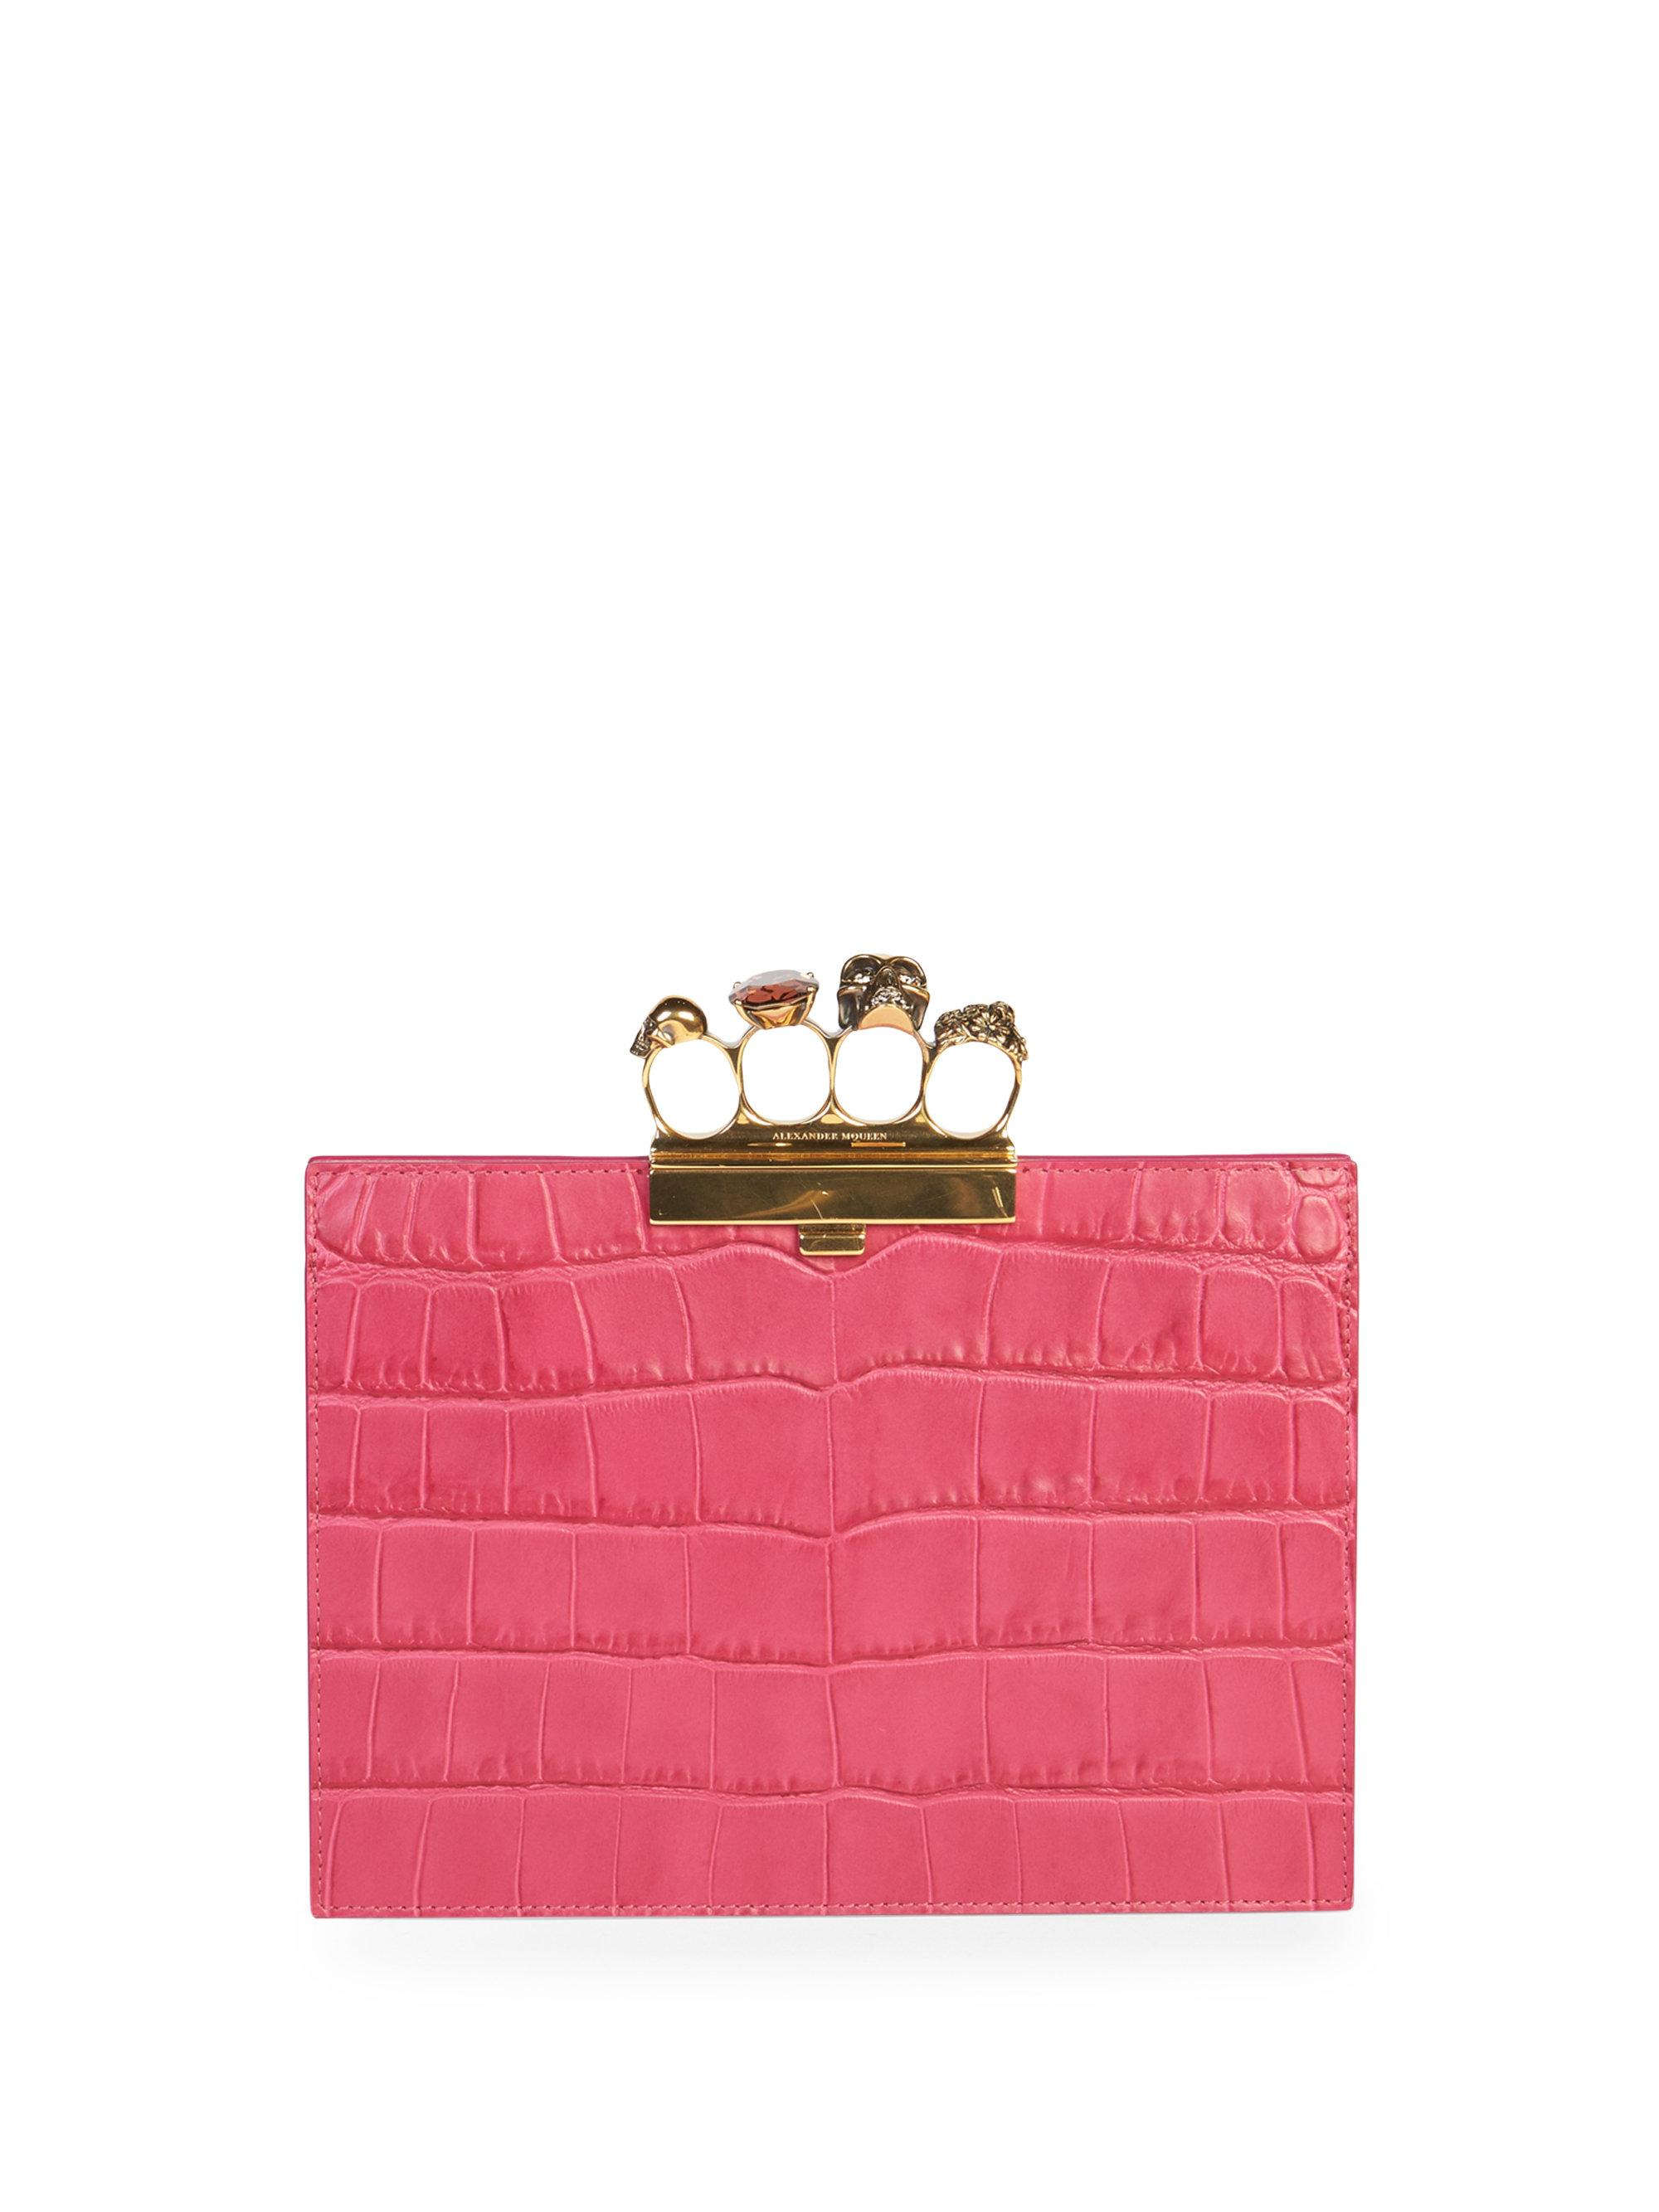 Alexander McQueen Jeweled Four Ring Crocodile-Embossed Clutch Bag, Dark Pink